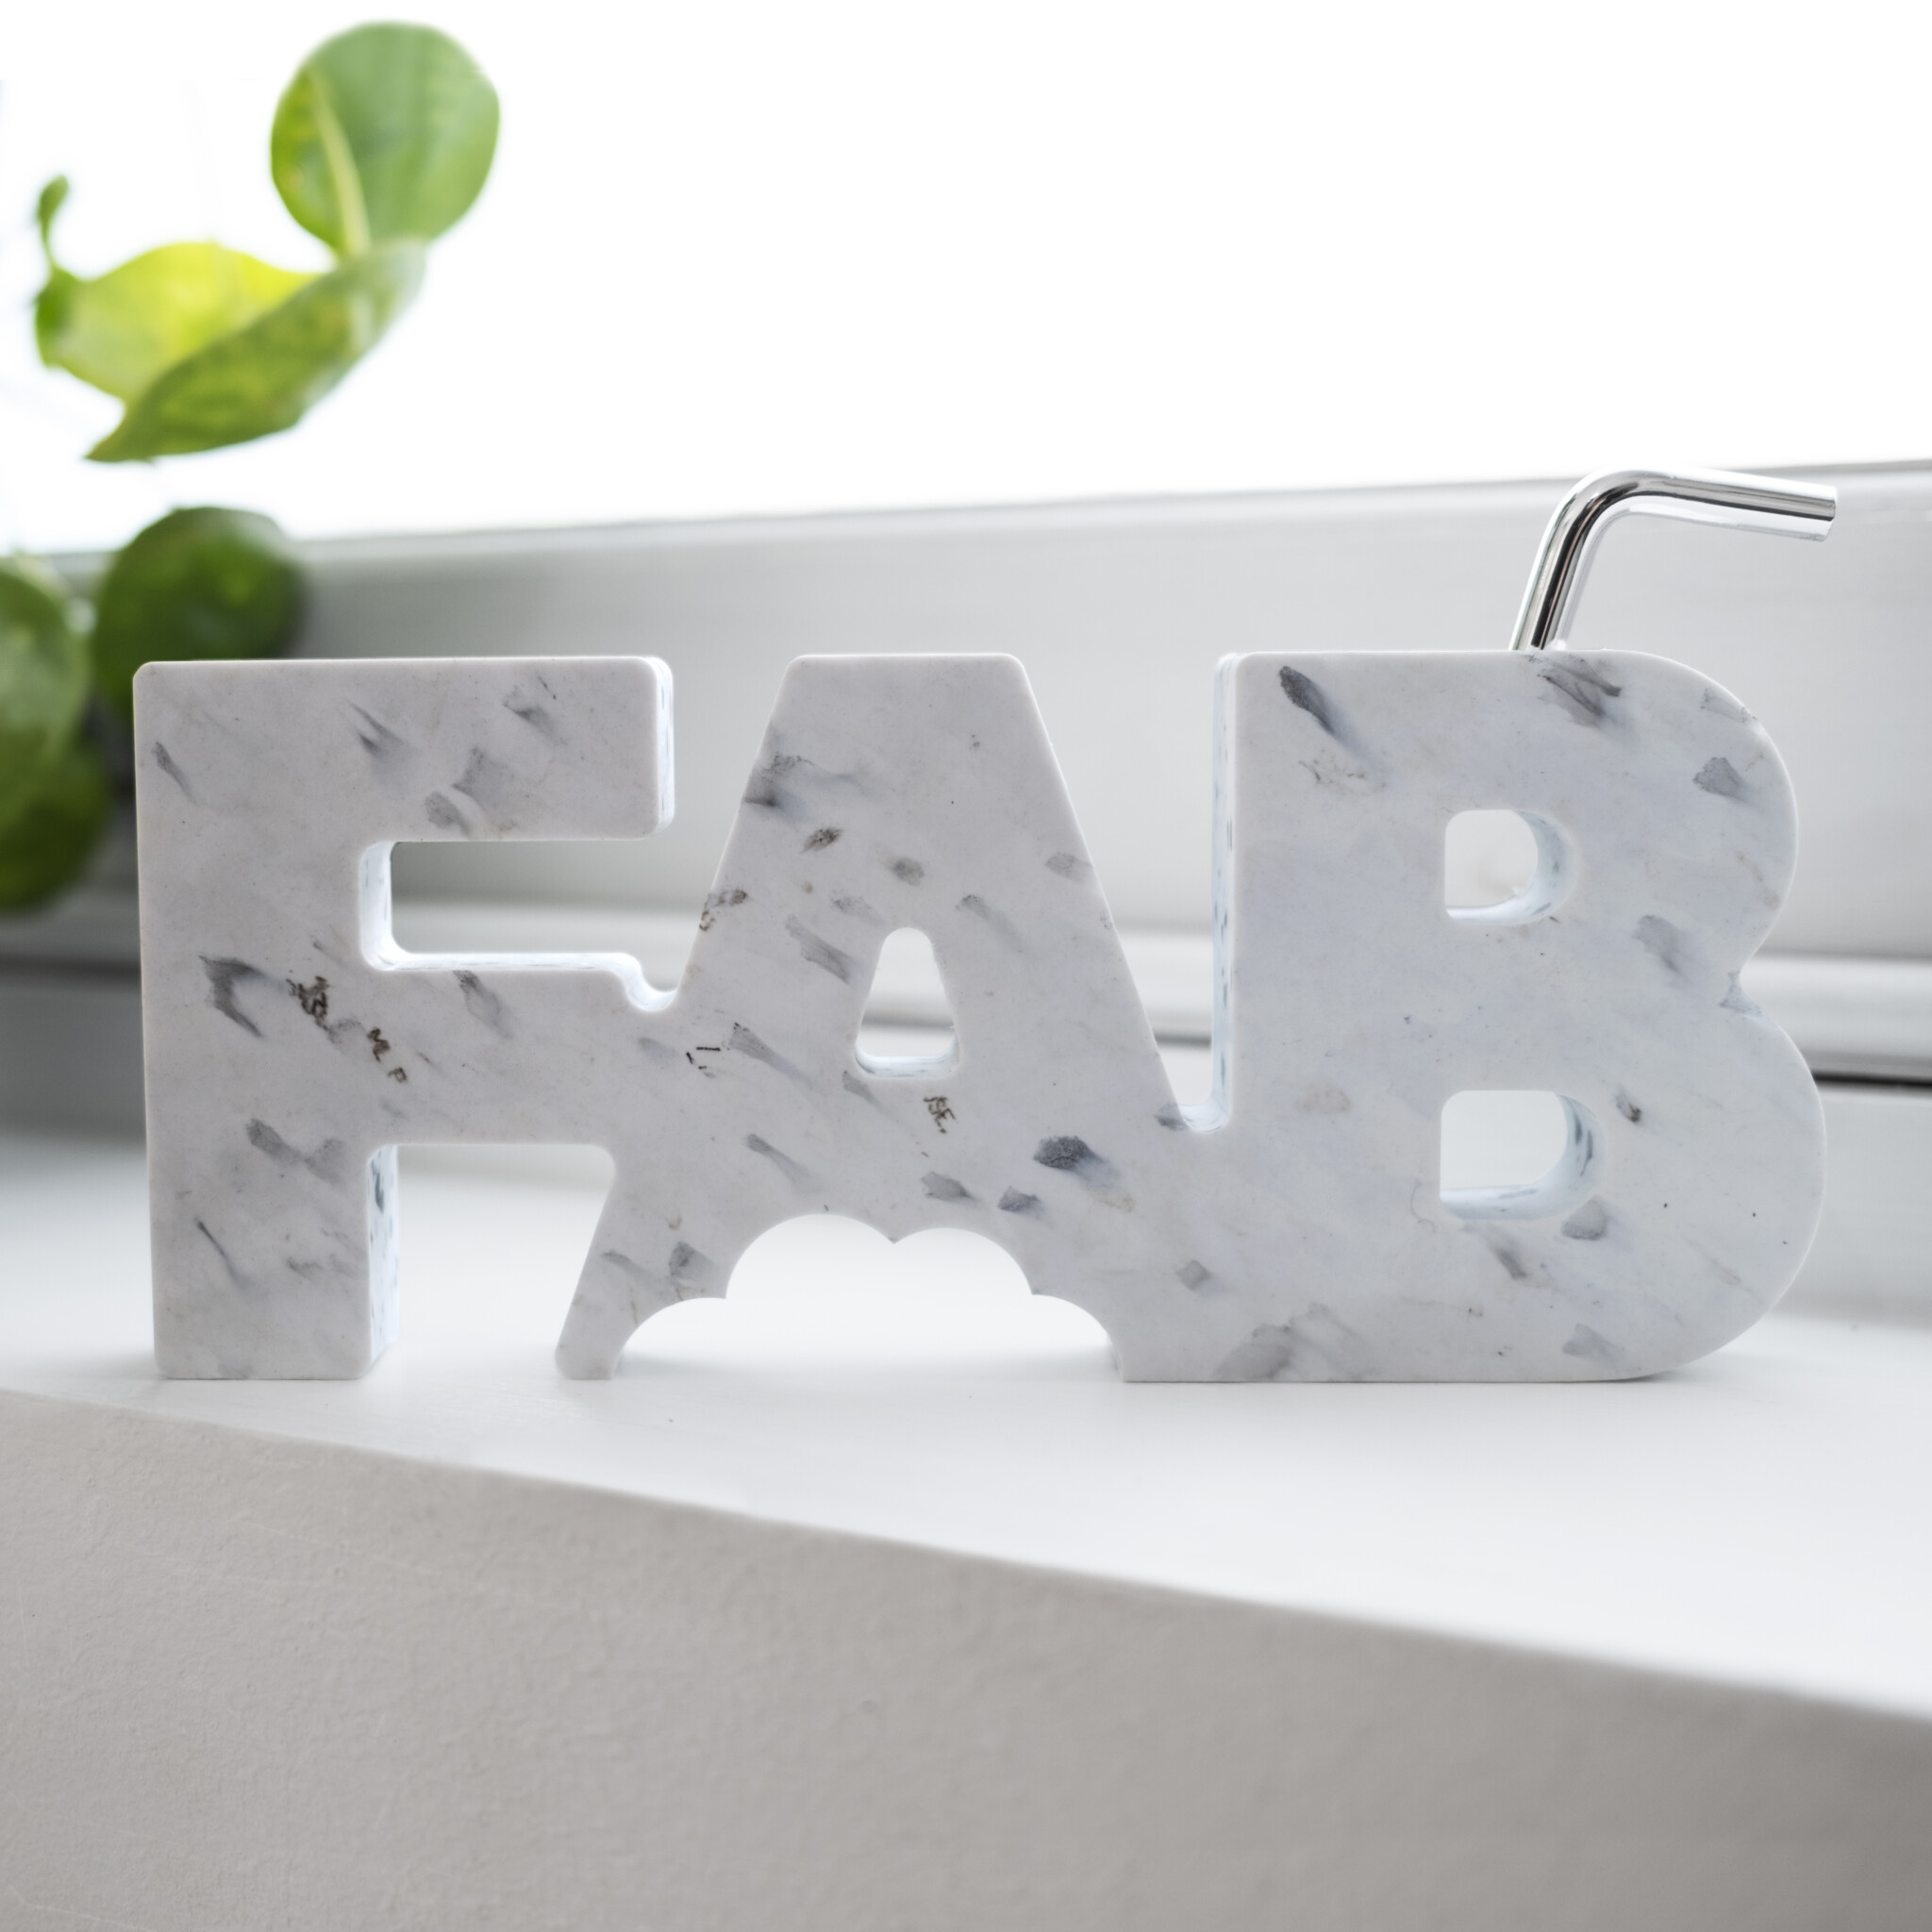 FAB_SILVER image